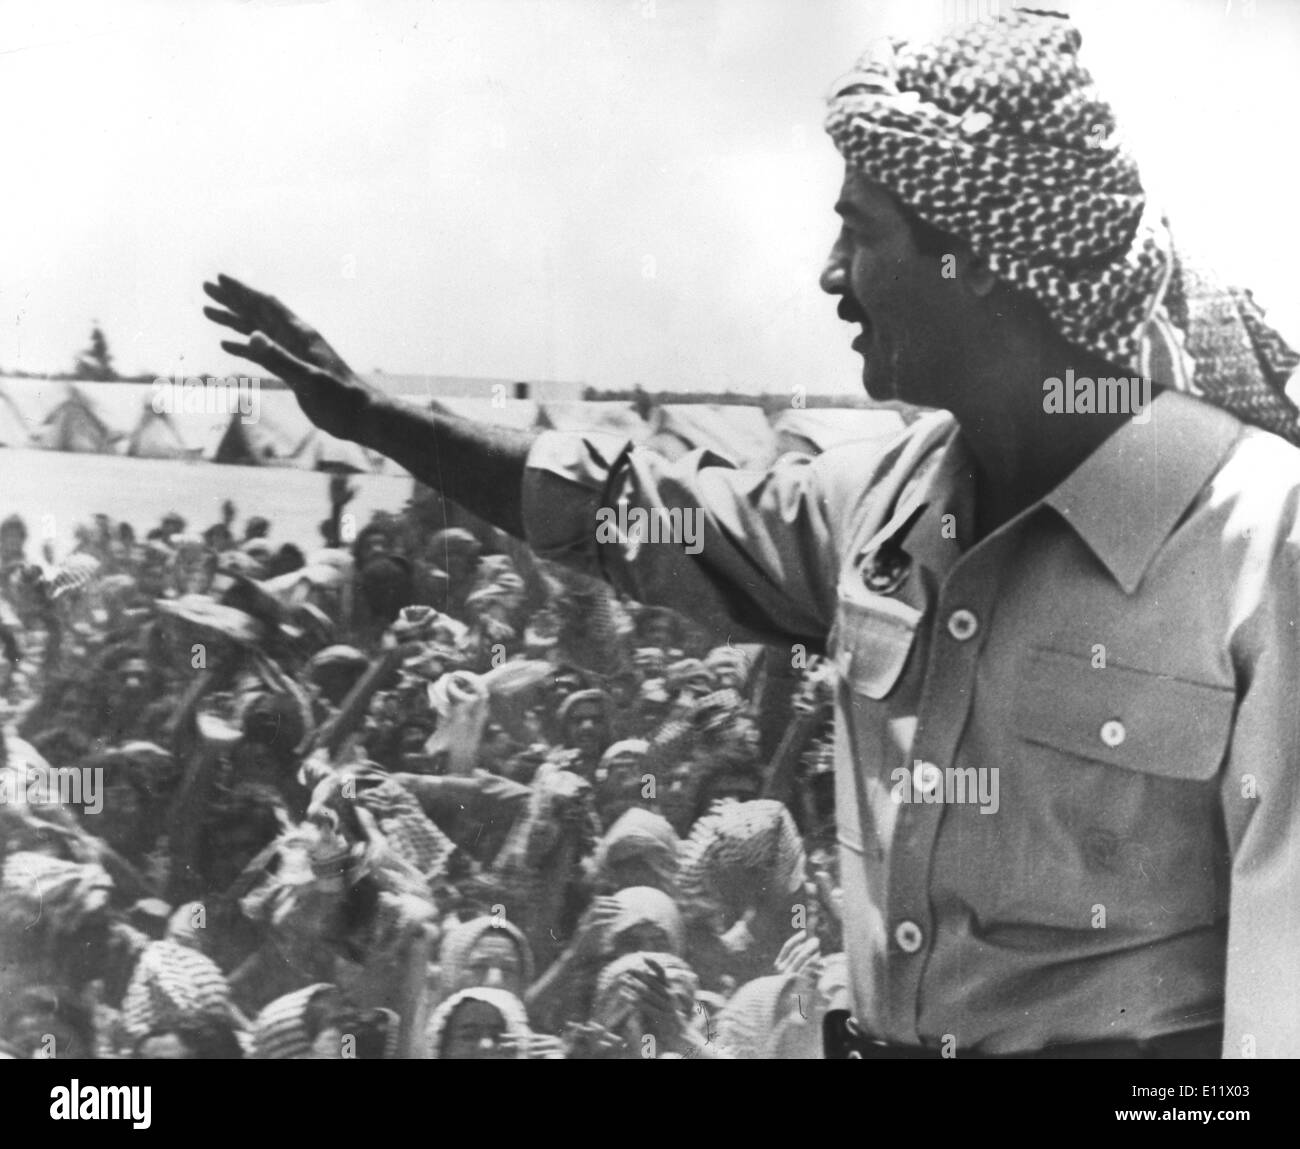 Iraq Leader SADDAM HUSSEIN addressing members of his armed forces shortly before the Invasion of Iran - Stock Image